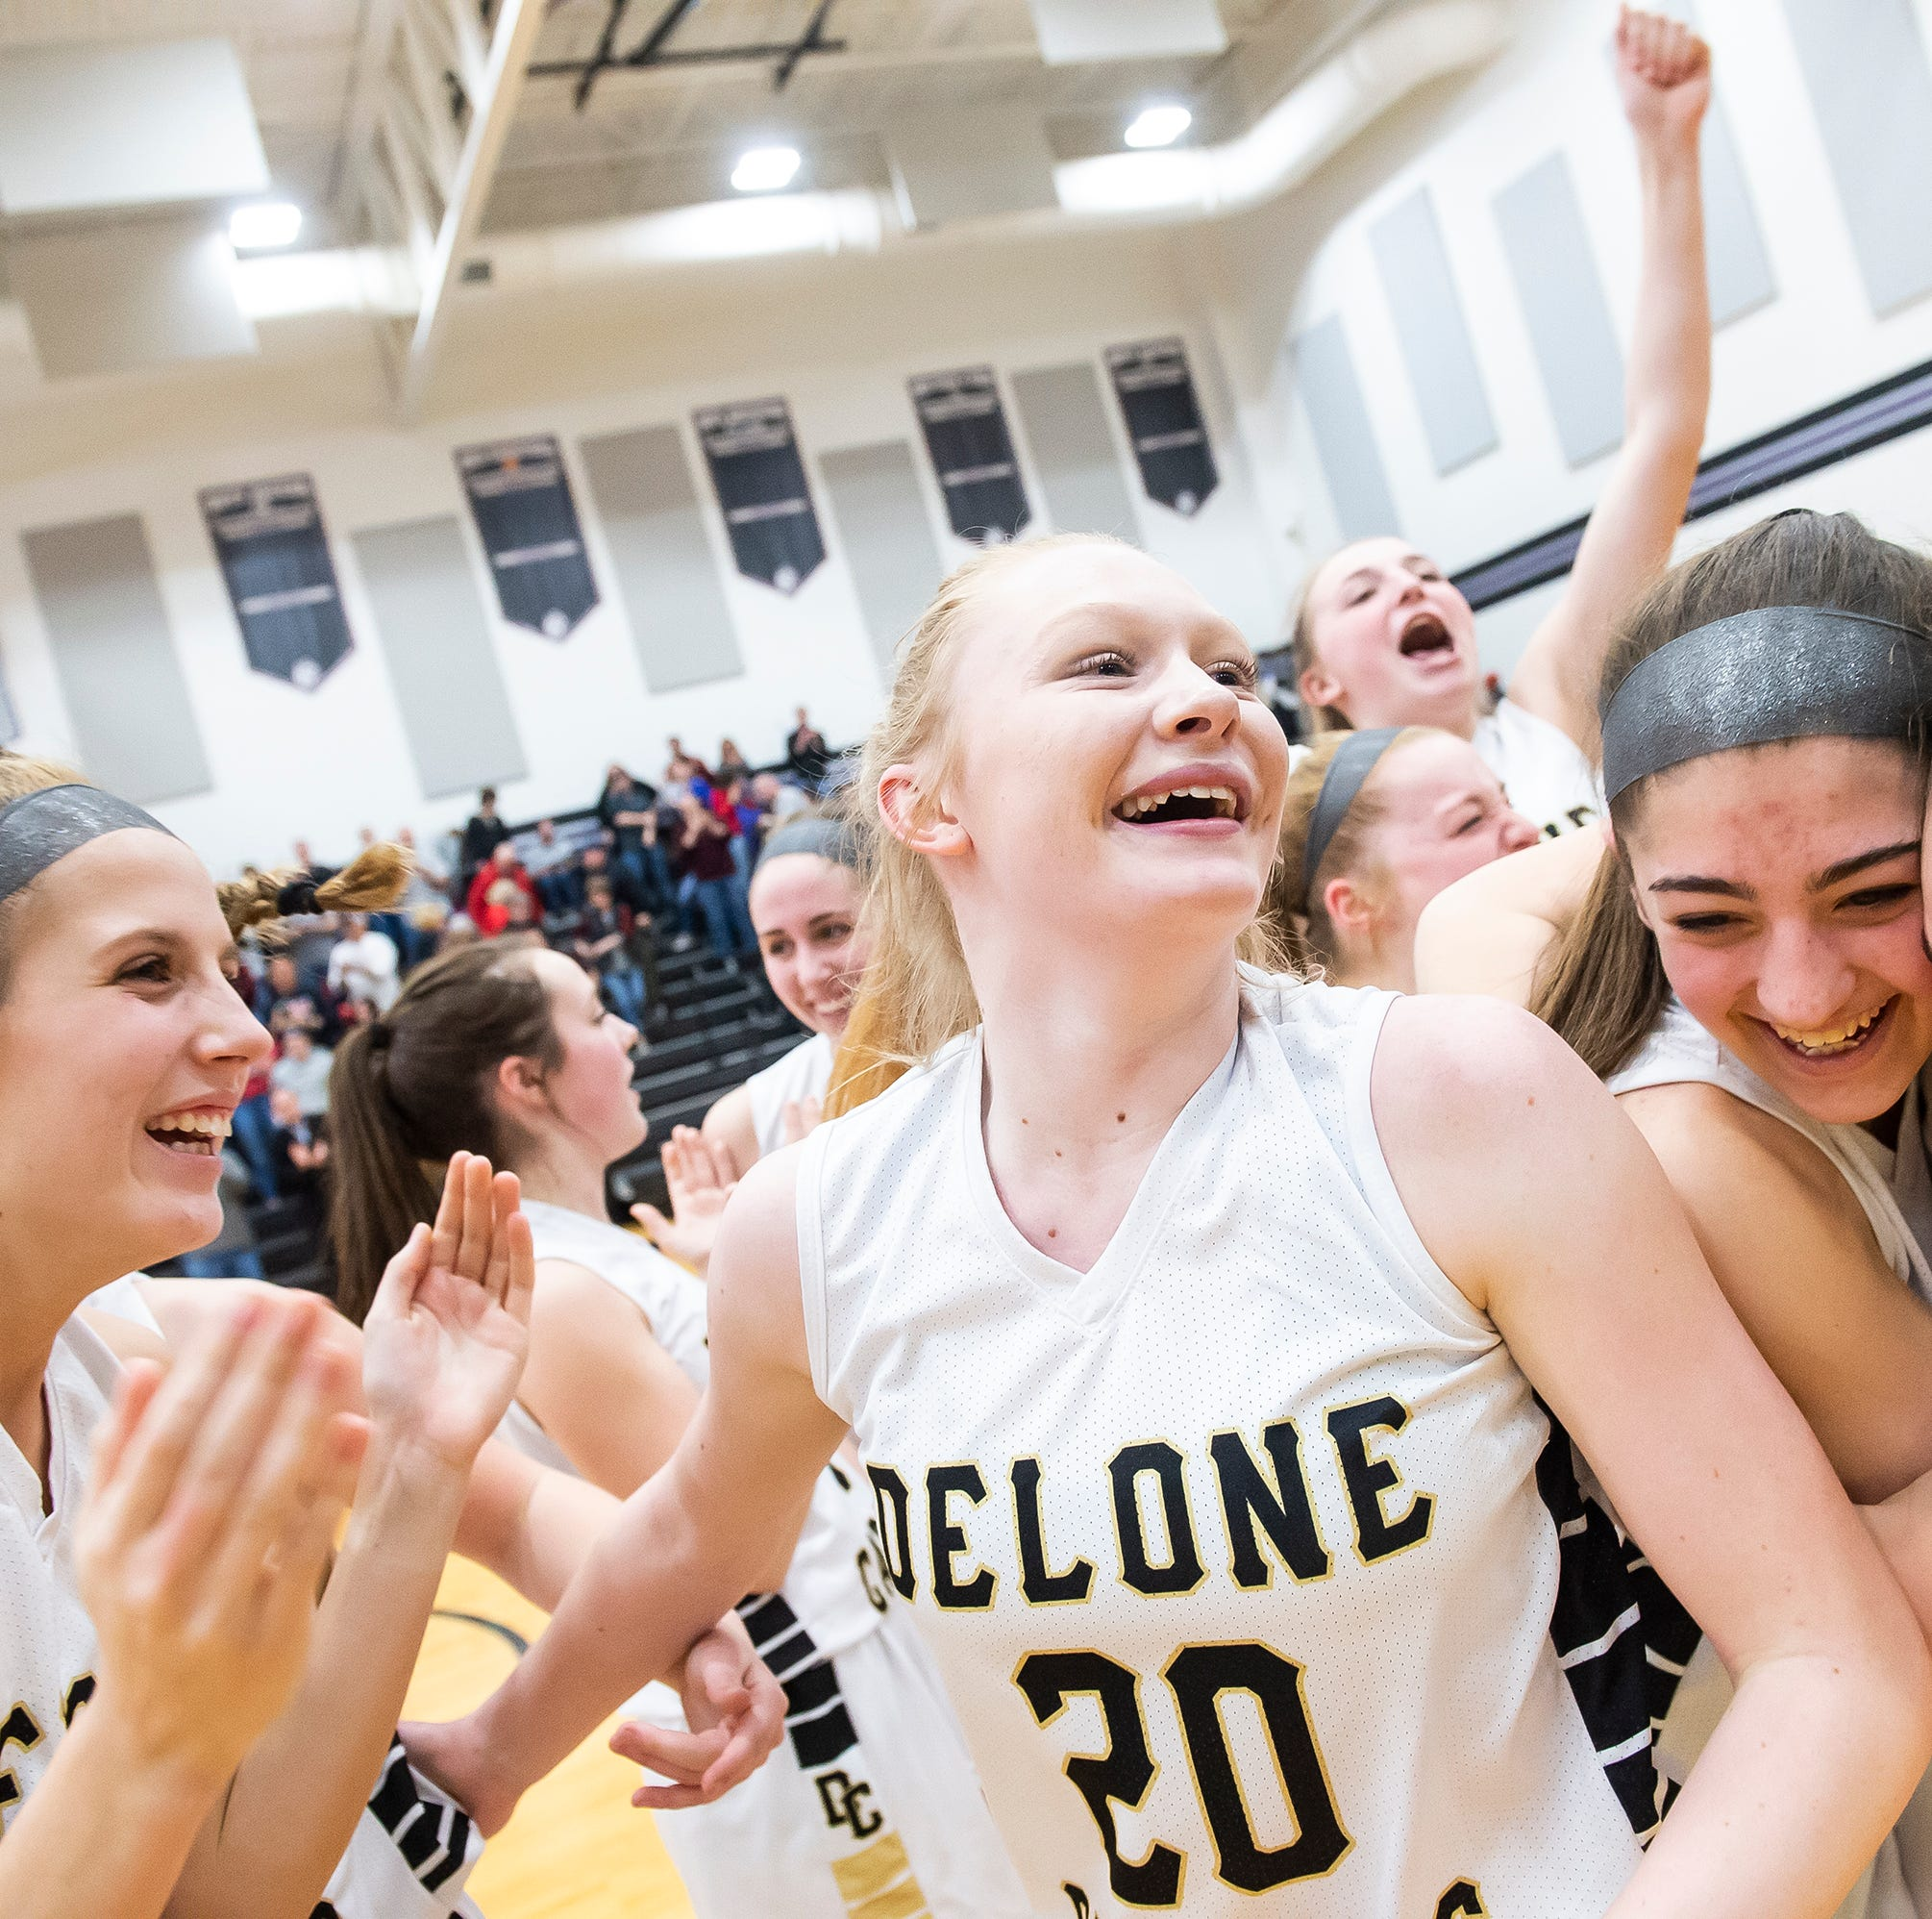 Delone Catholic girls headed to state championship game after defeating Central Cambria